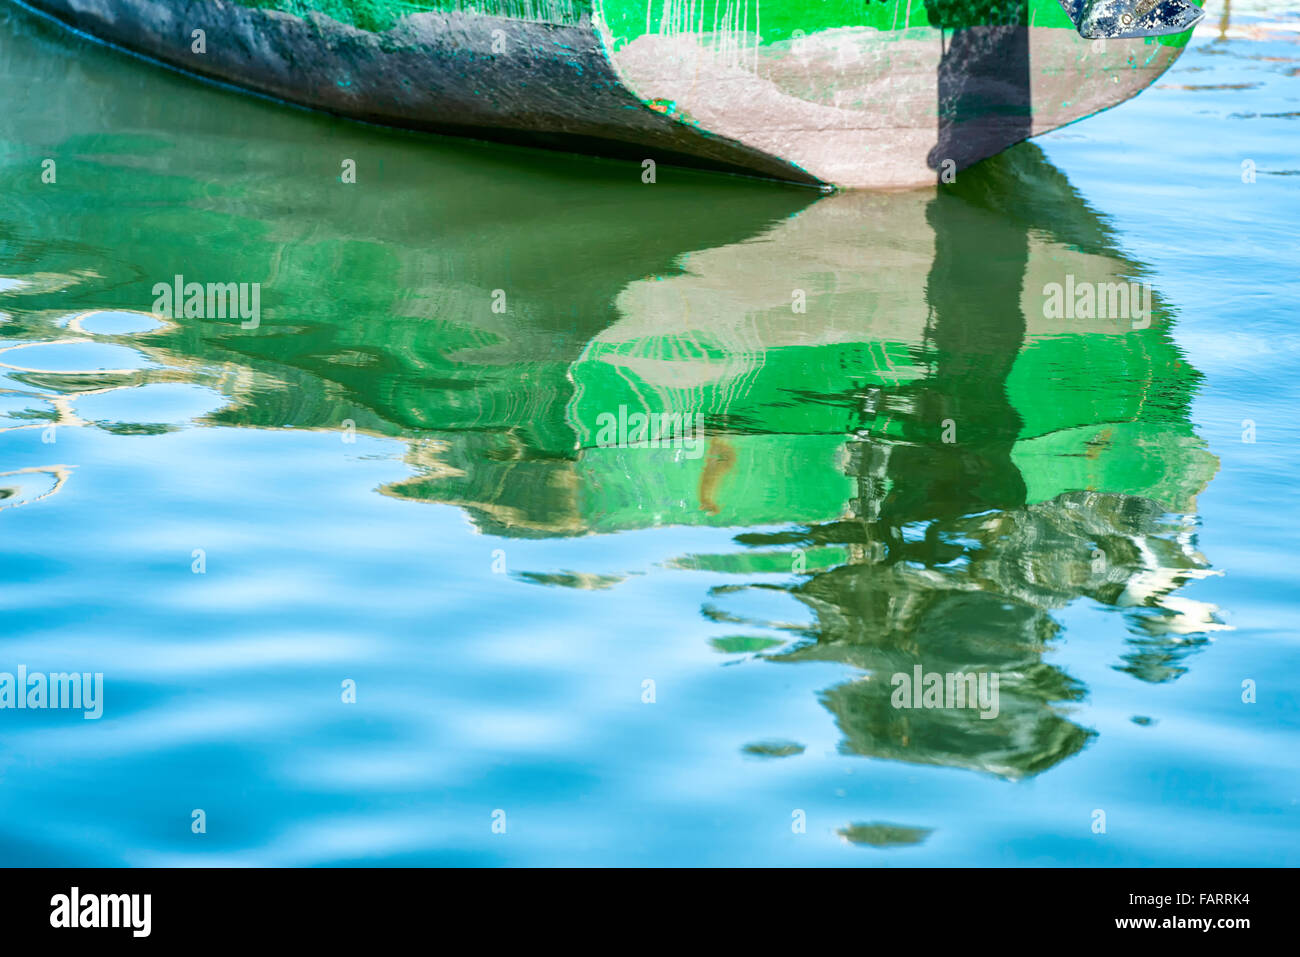 Boat with reflection in water. Stock Photo